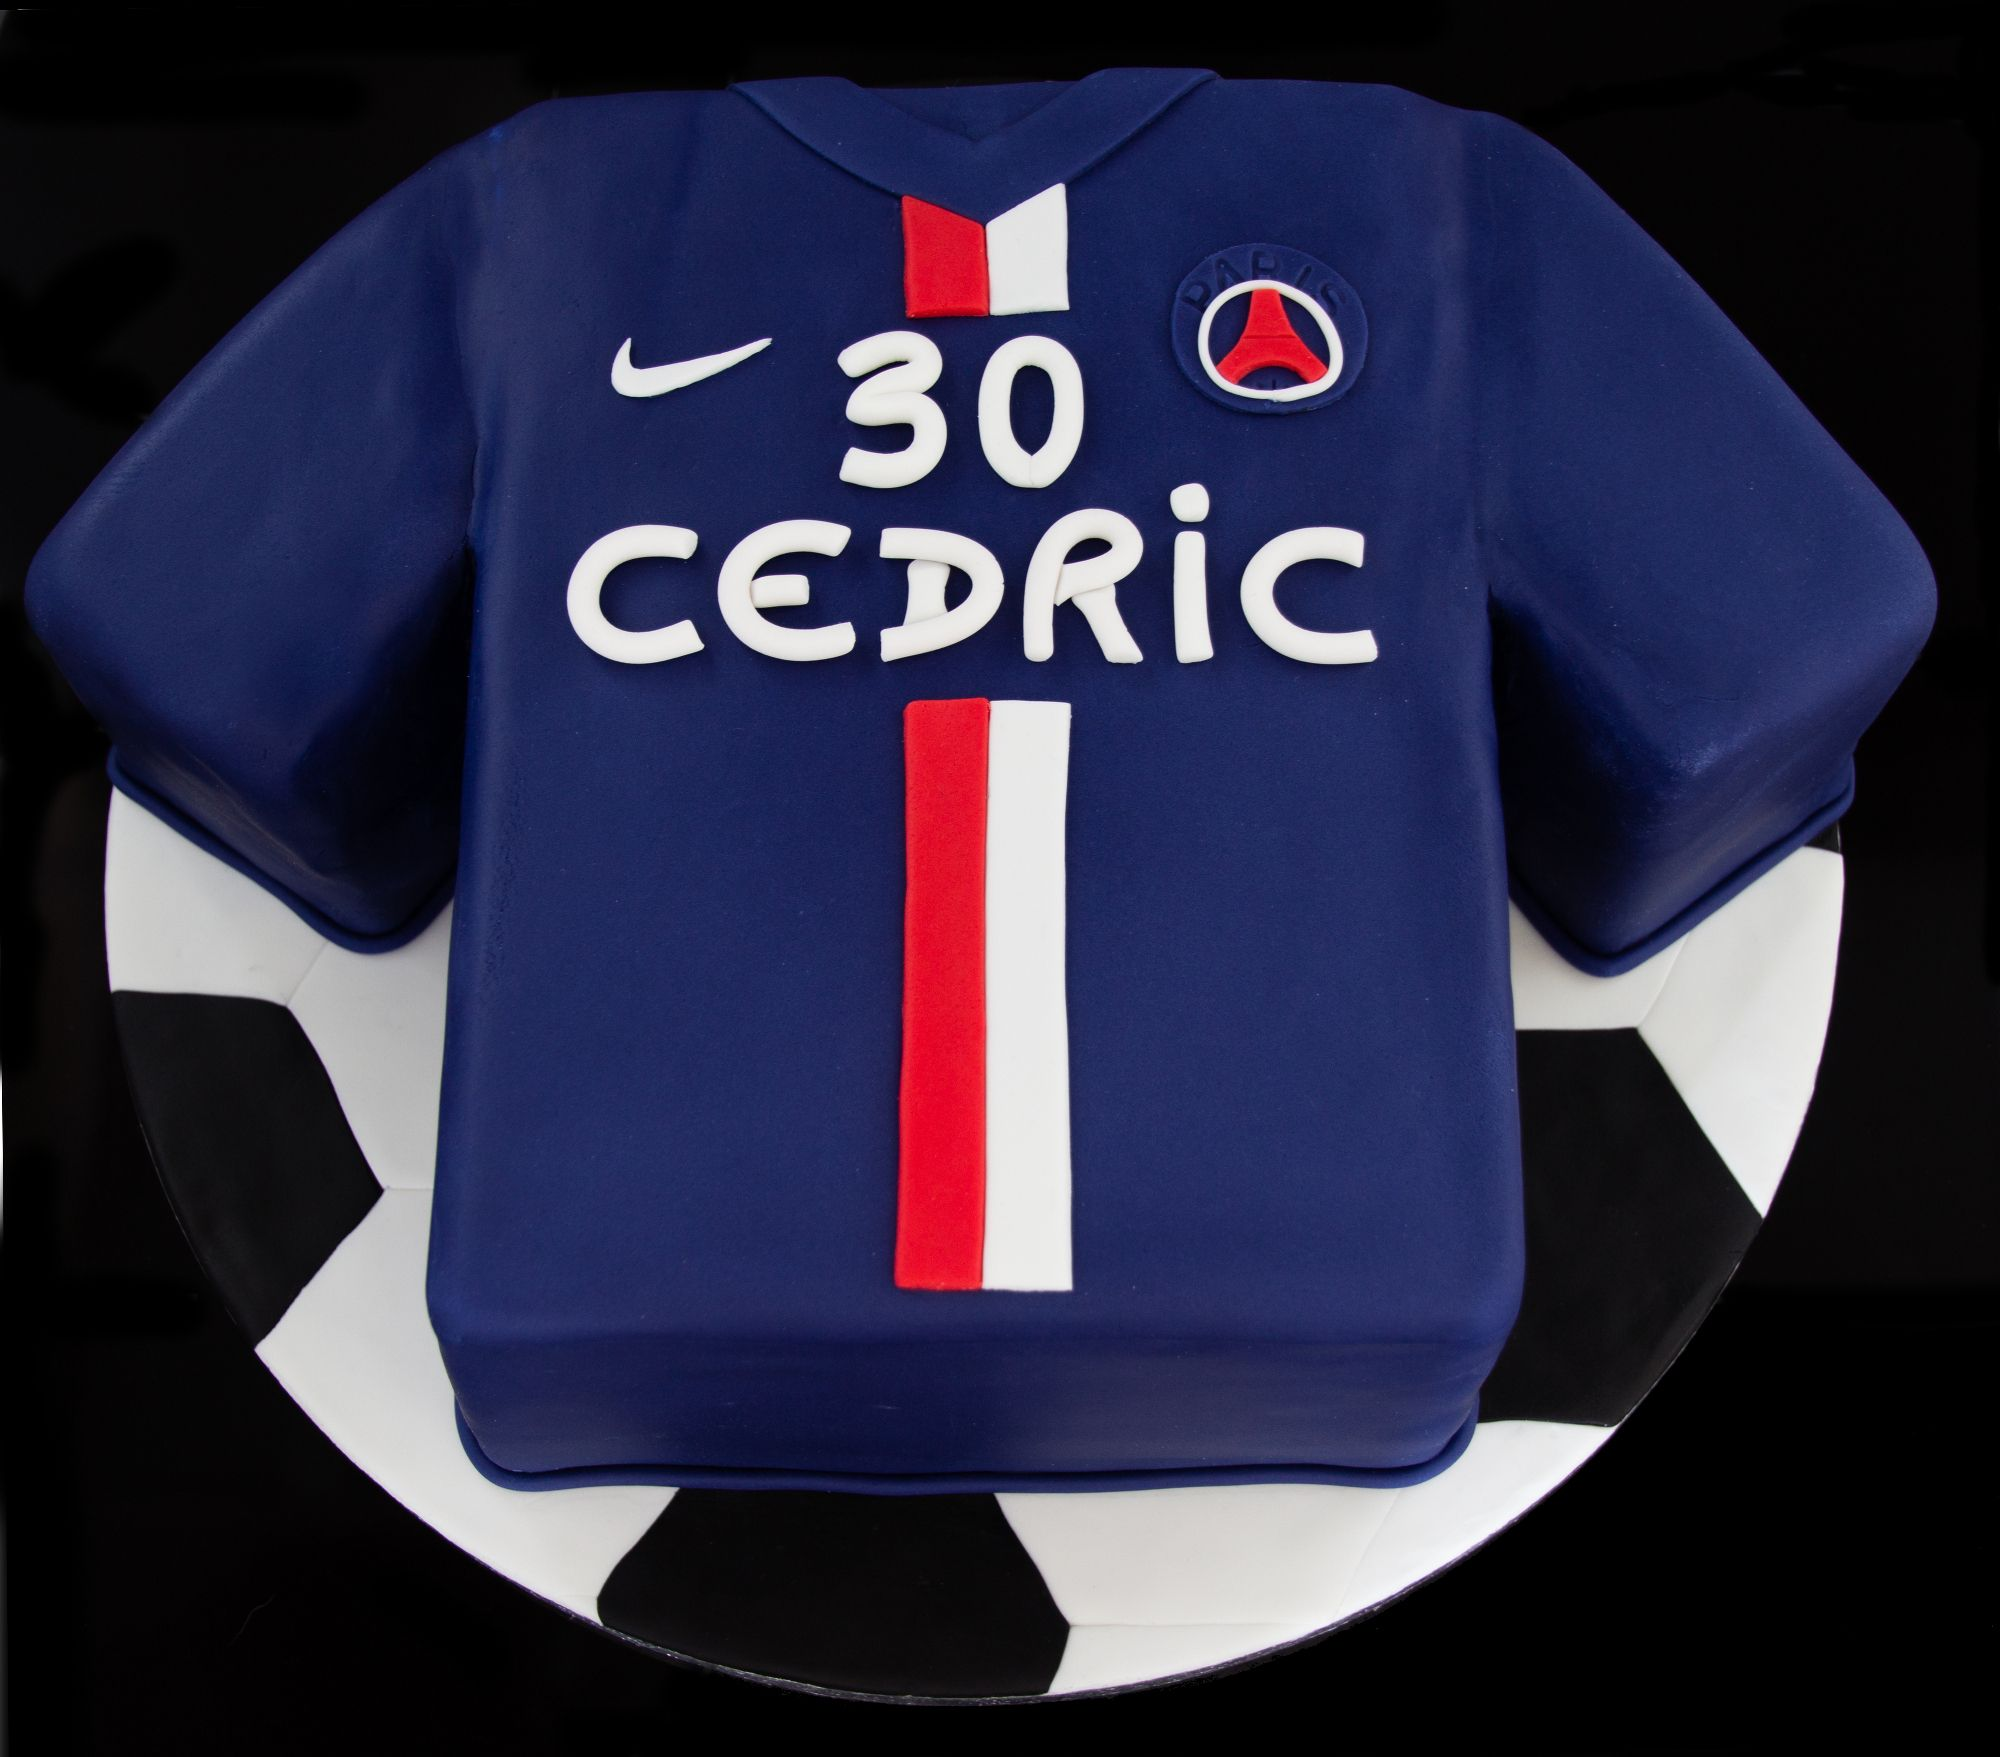 cake design g teau personnalis en p te sucre en forme de maillot du paris saint germain psg. Black Bedroom Furniture Sets. Home Design Ideas